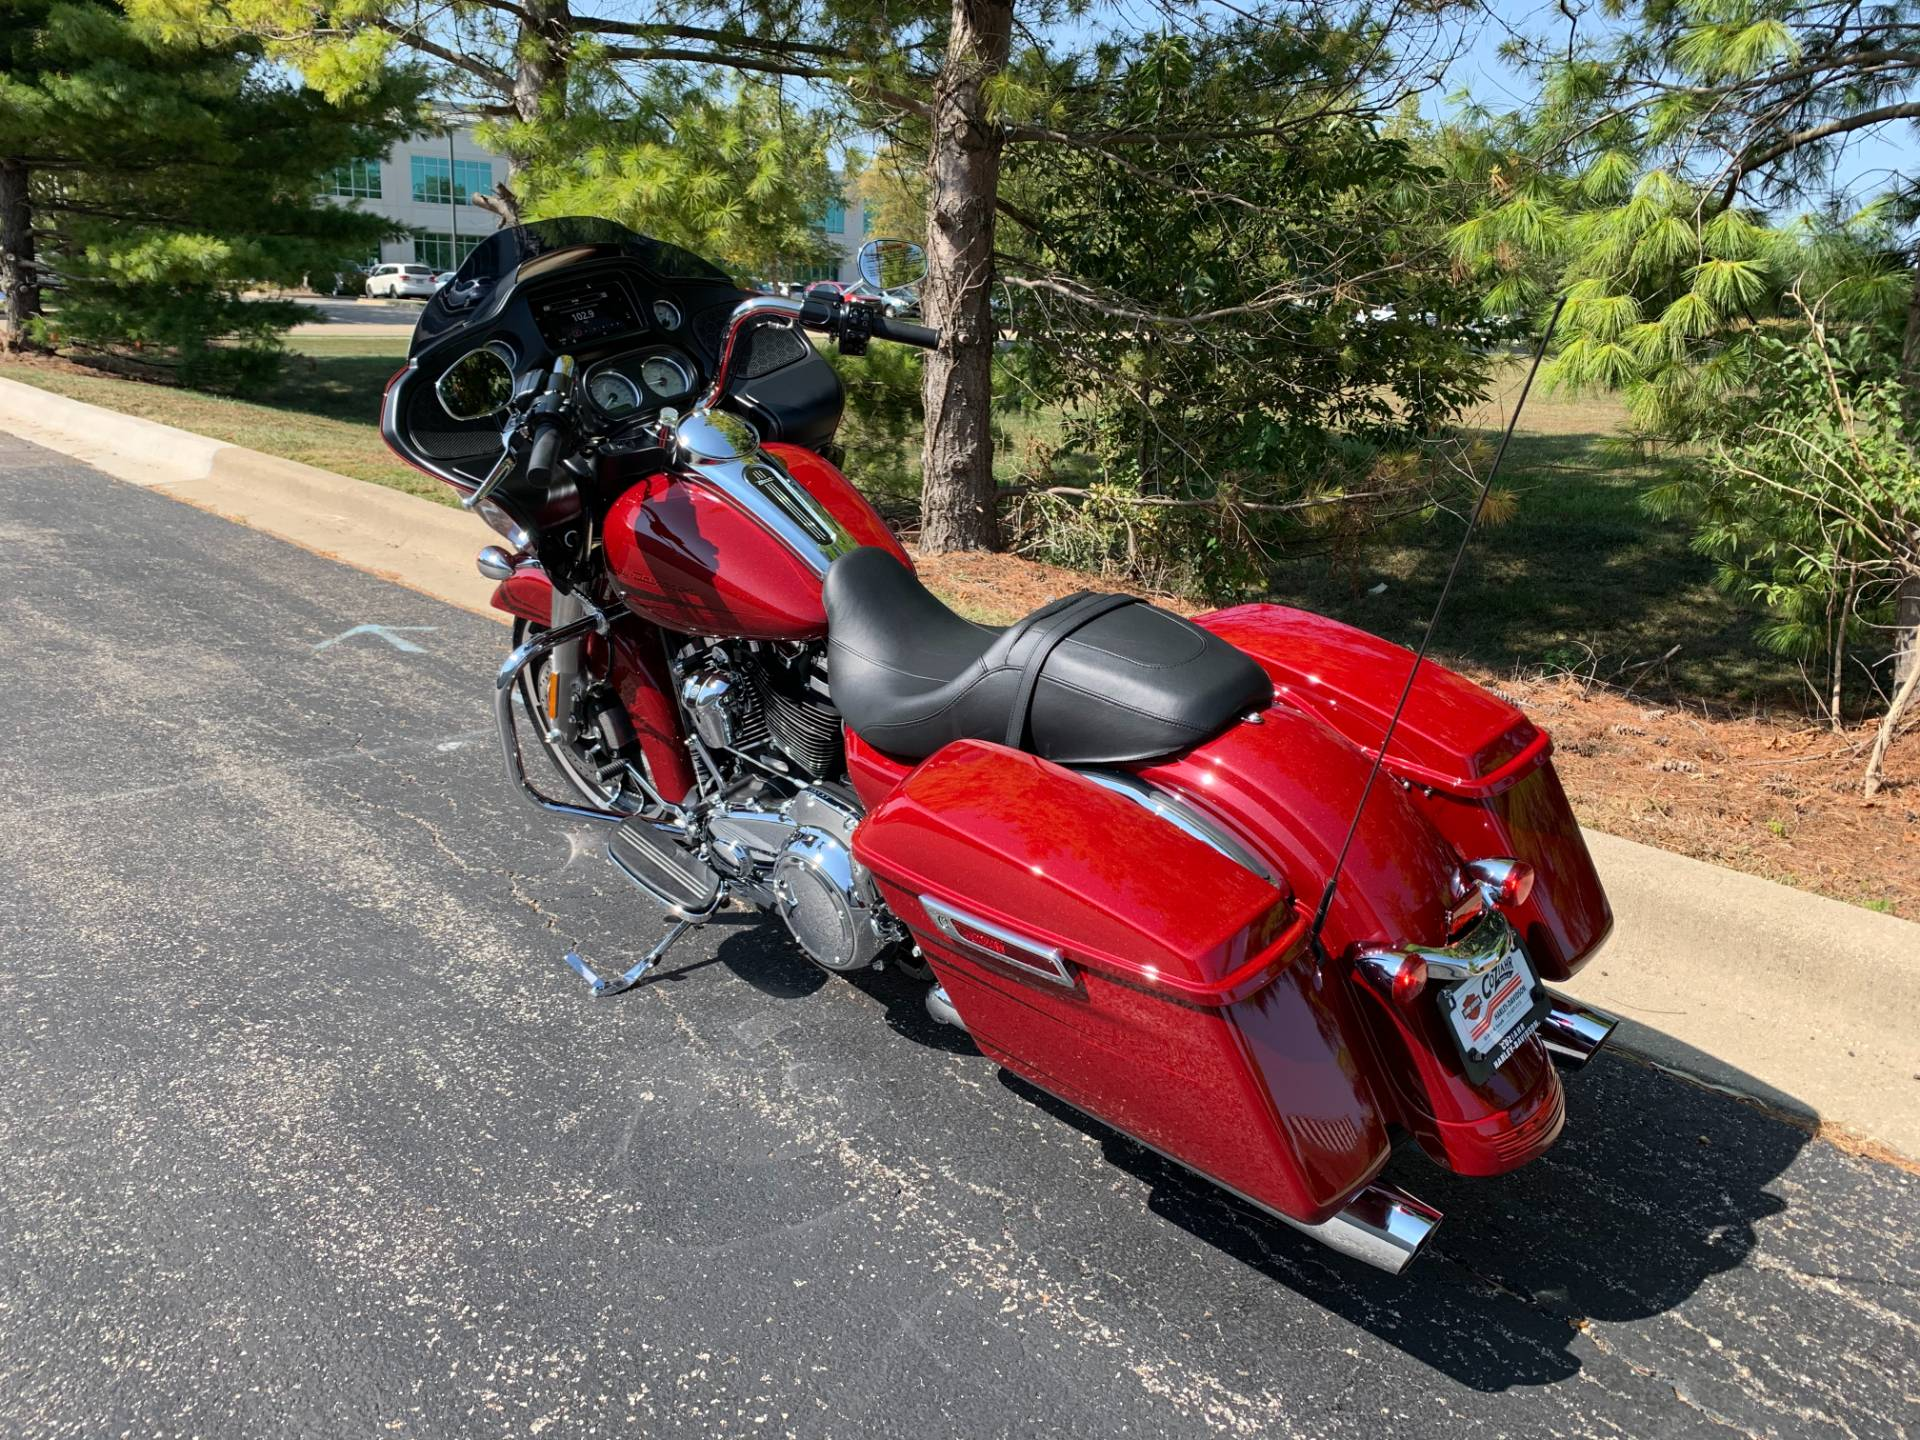 2020 Harley-Davidson Road Glide in Forsyth, Illinois - Photo 6